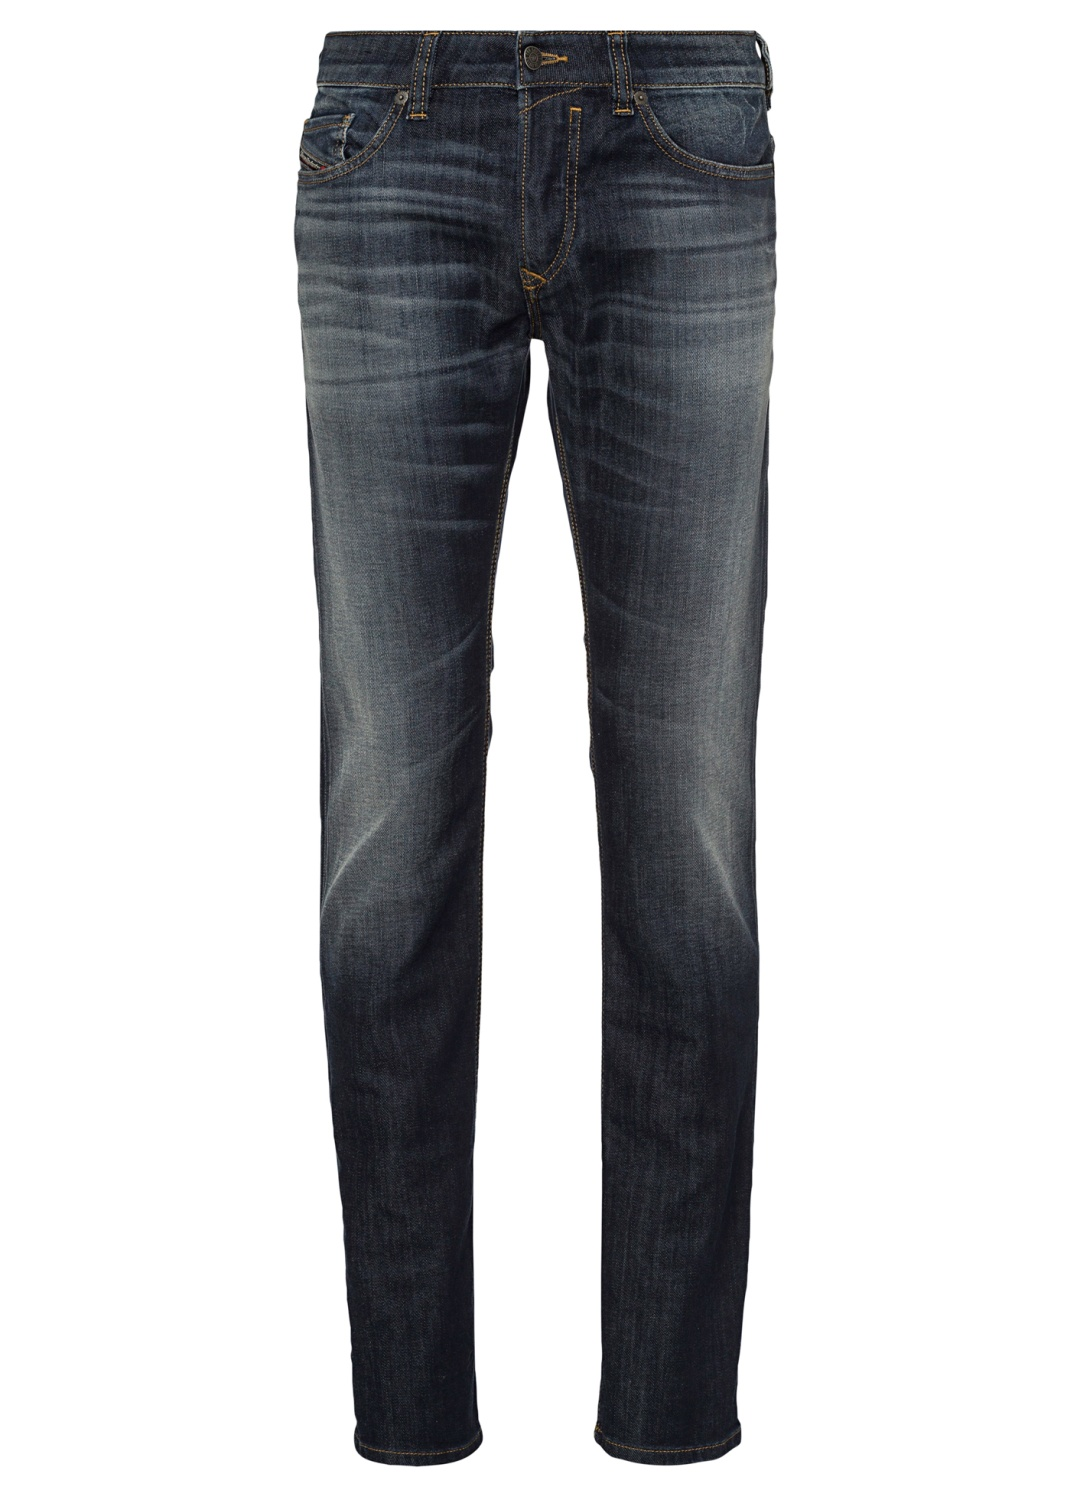 SAFADO-X L.34 TROUSERS image number 0